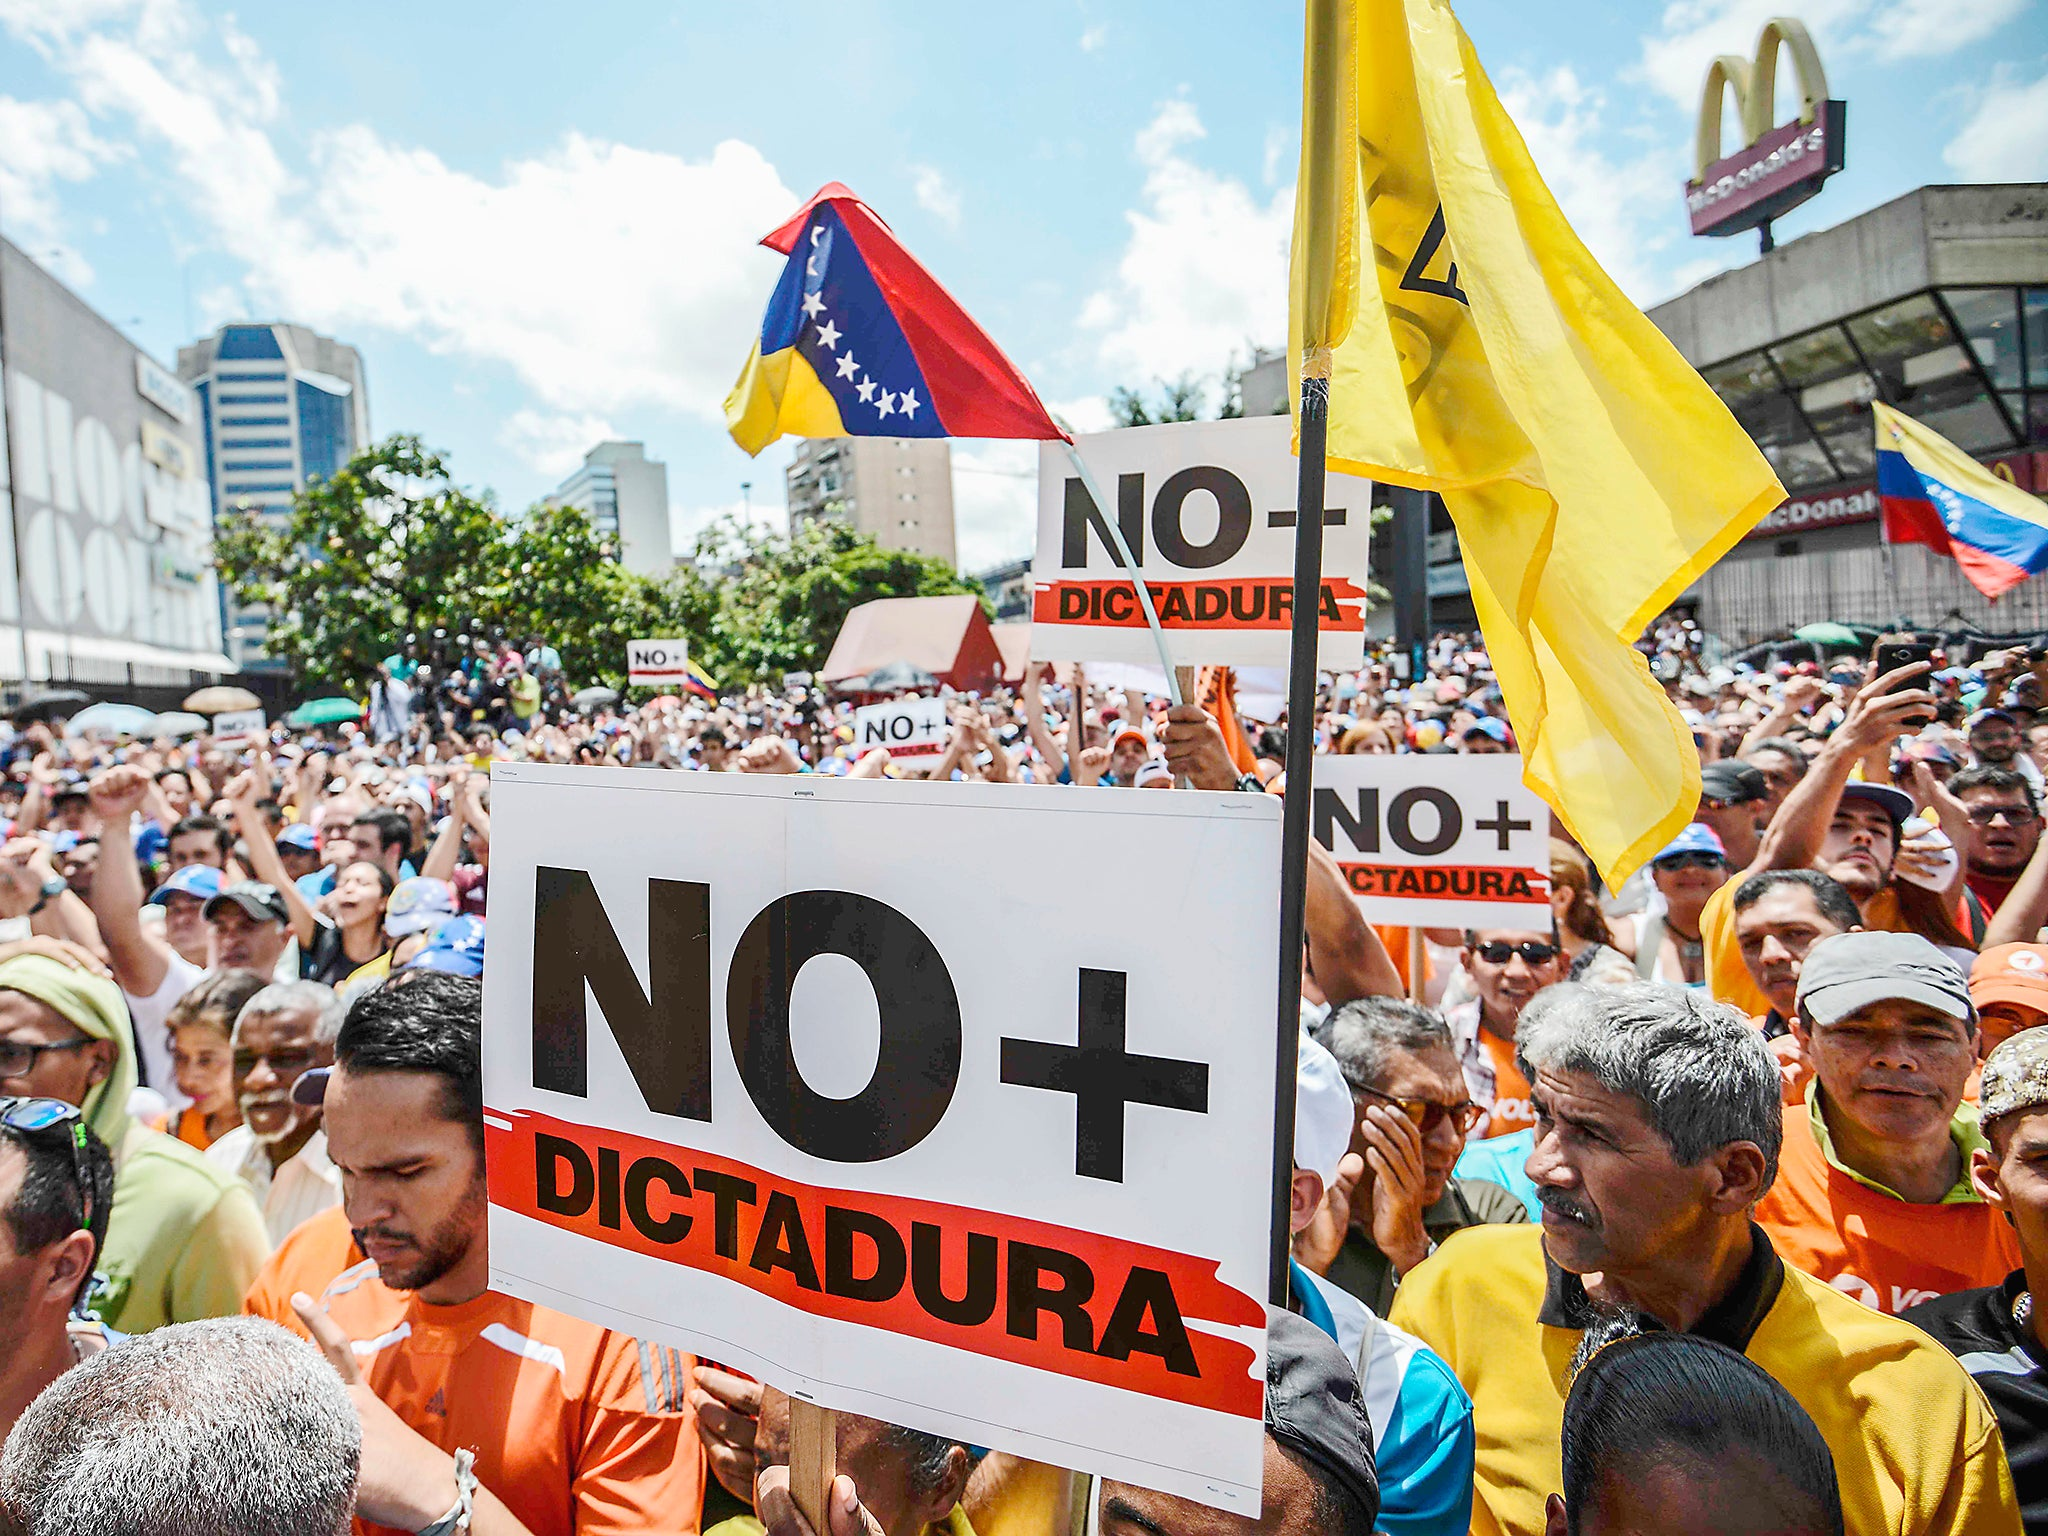 A distracted world at last pays attention as Venezuela flirts with outright dictatorship